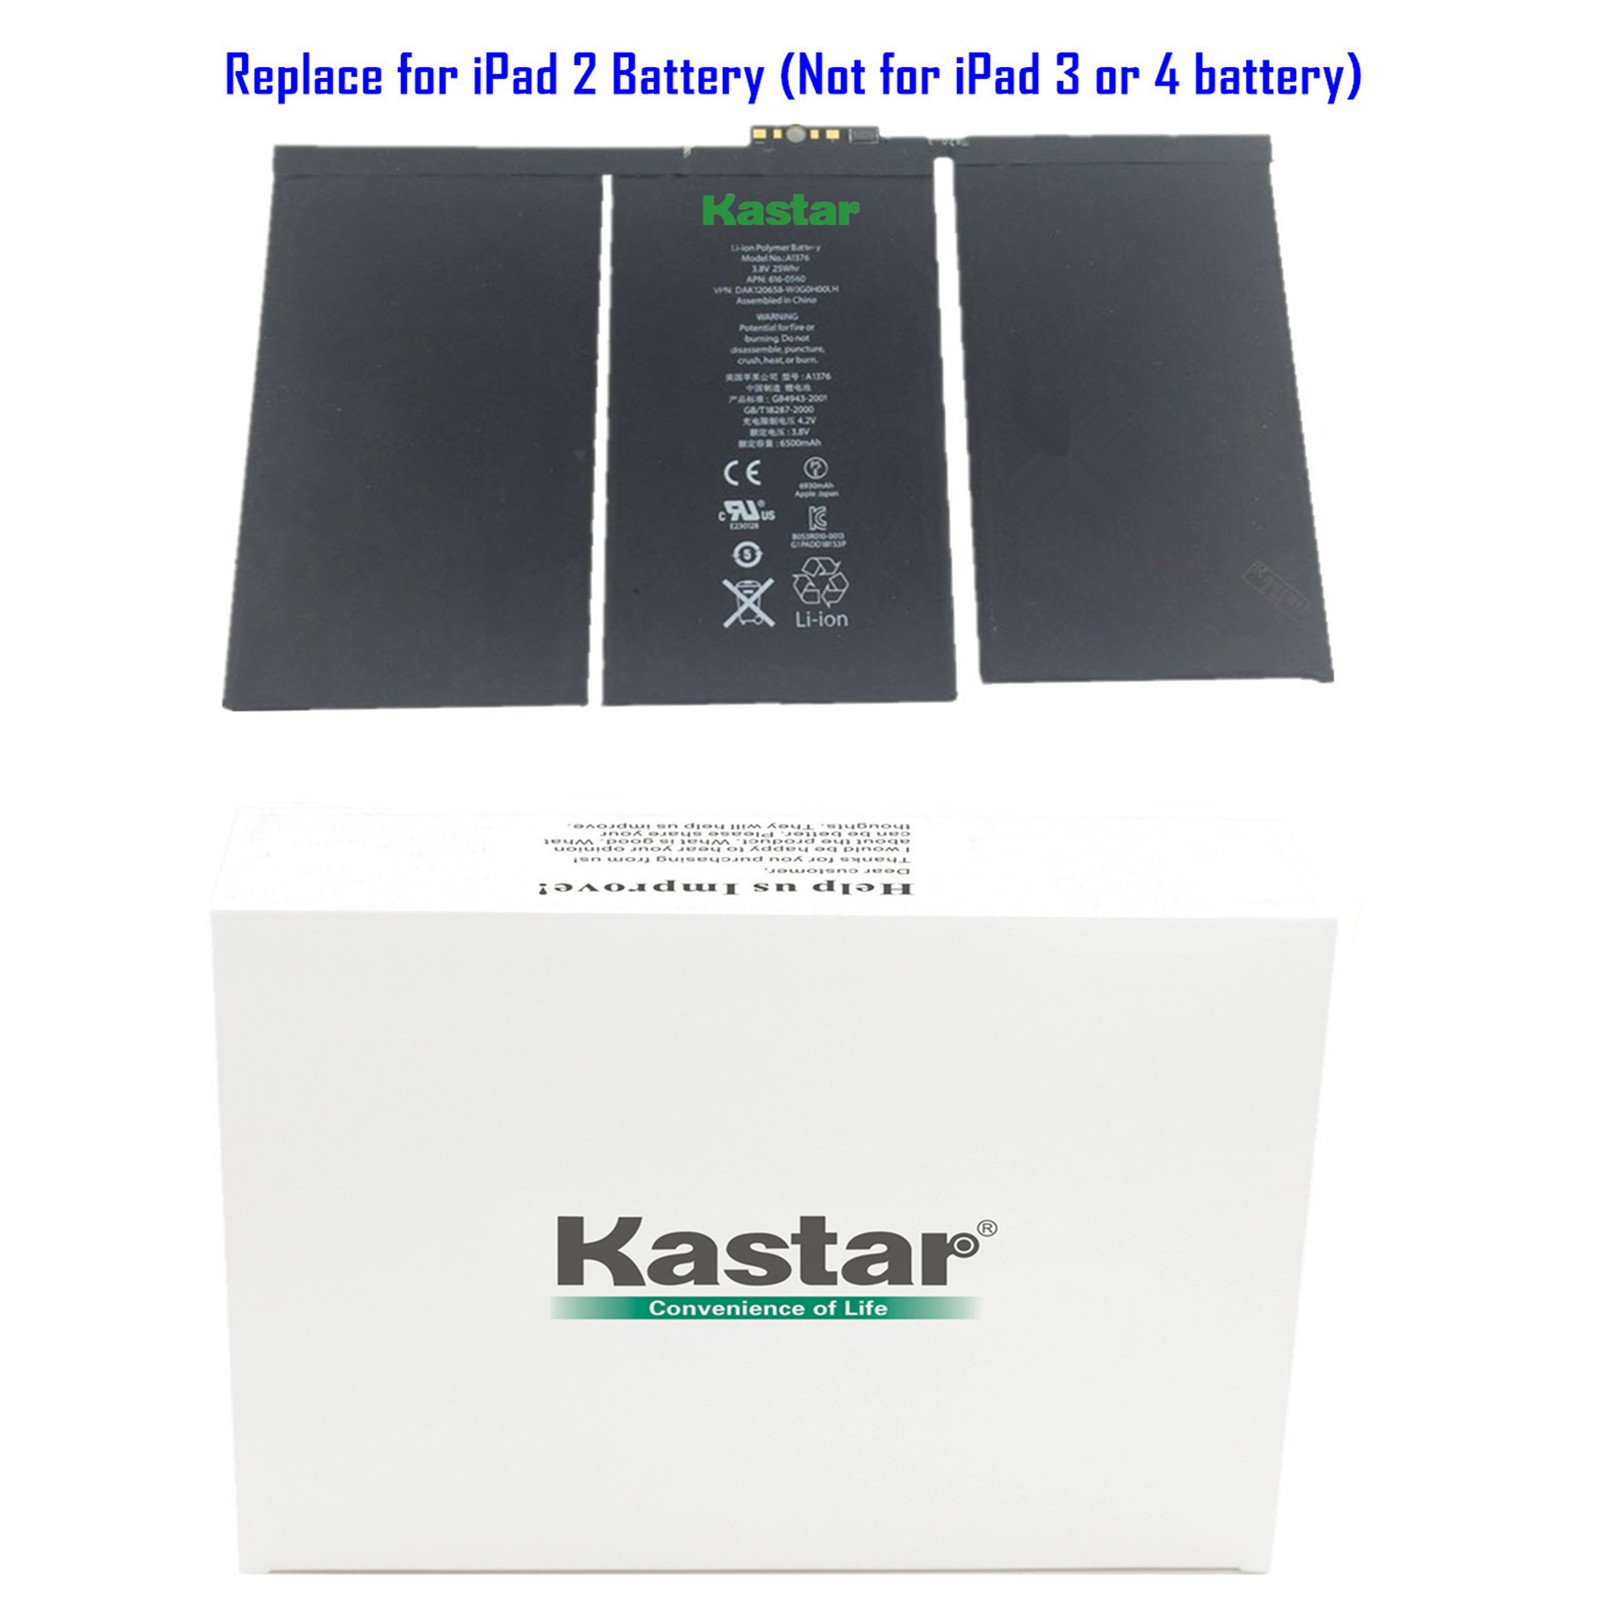 Kastar Battery for Apple iPad 2 (the 2nd Generation iPad) Replacement Internal Battery 3.8V 25Whr 6500mAh Fixes for Apple iPad 2 iPad2